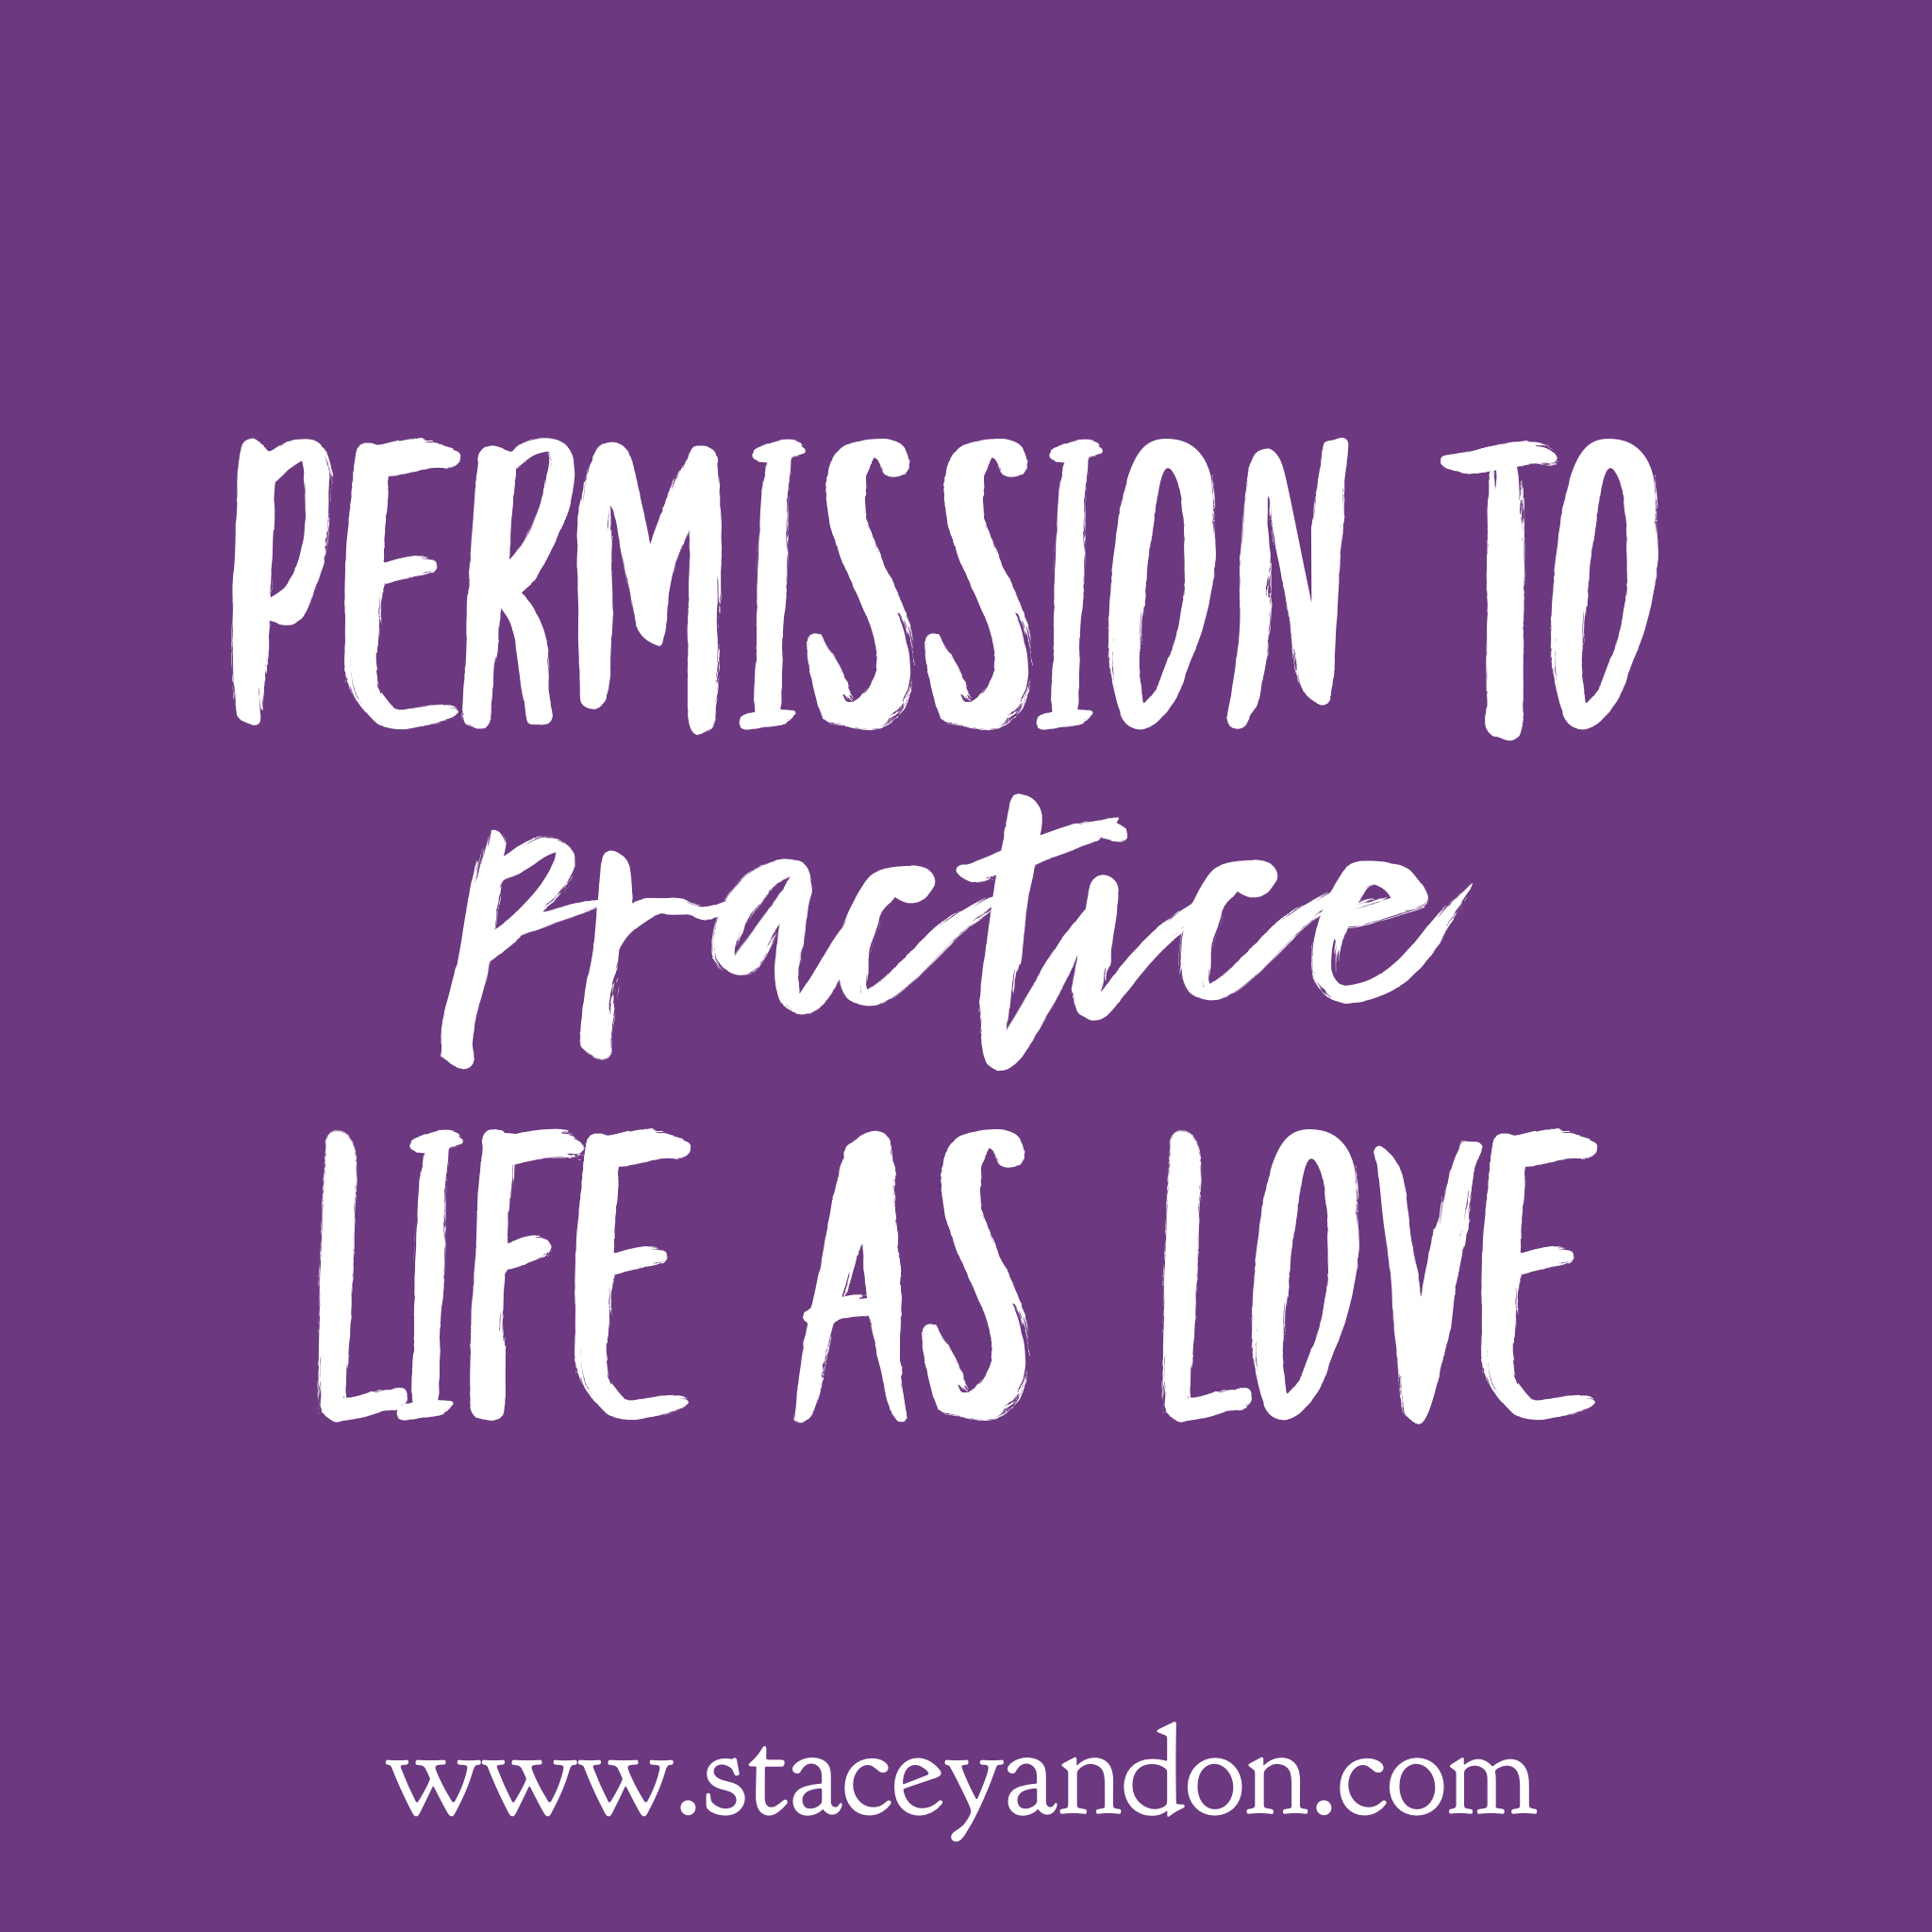 What do you love to practice?